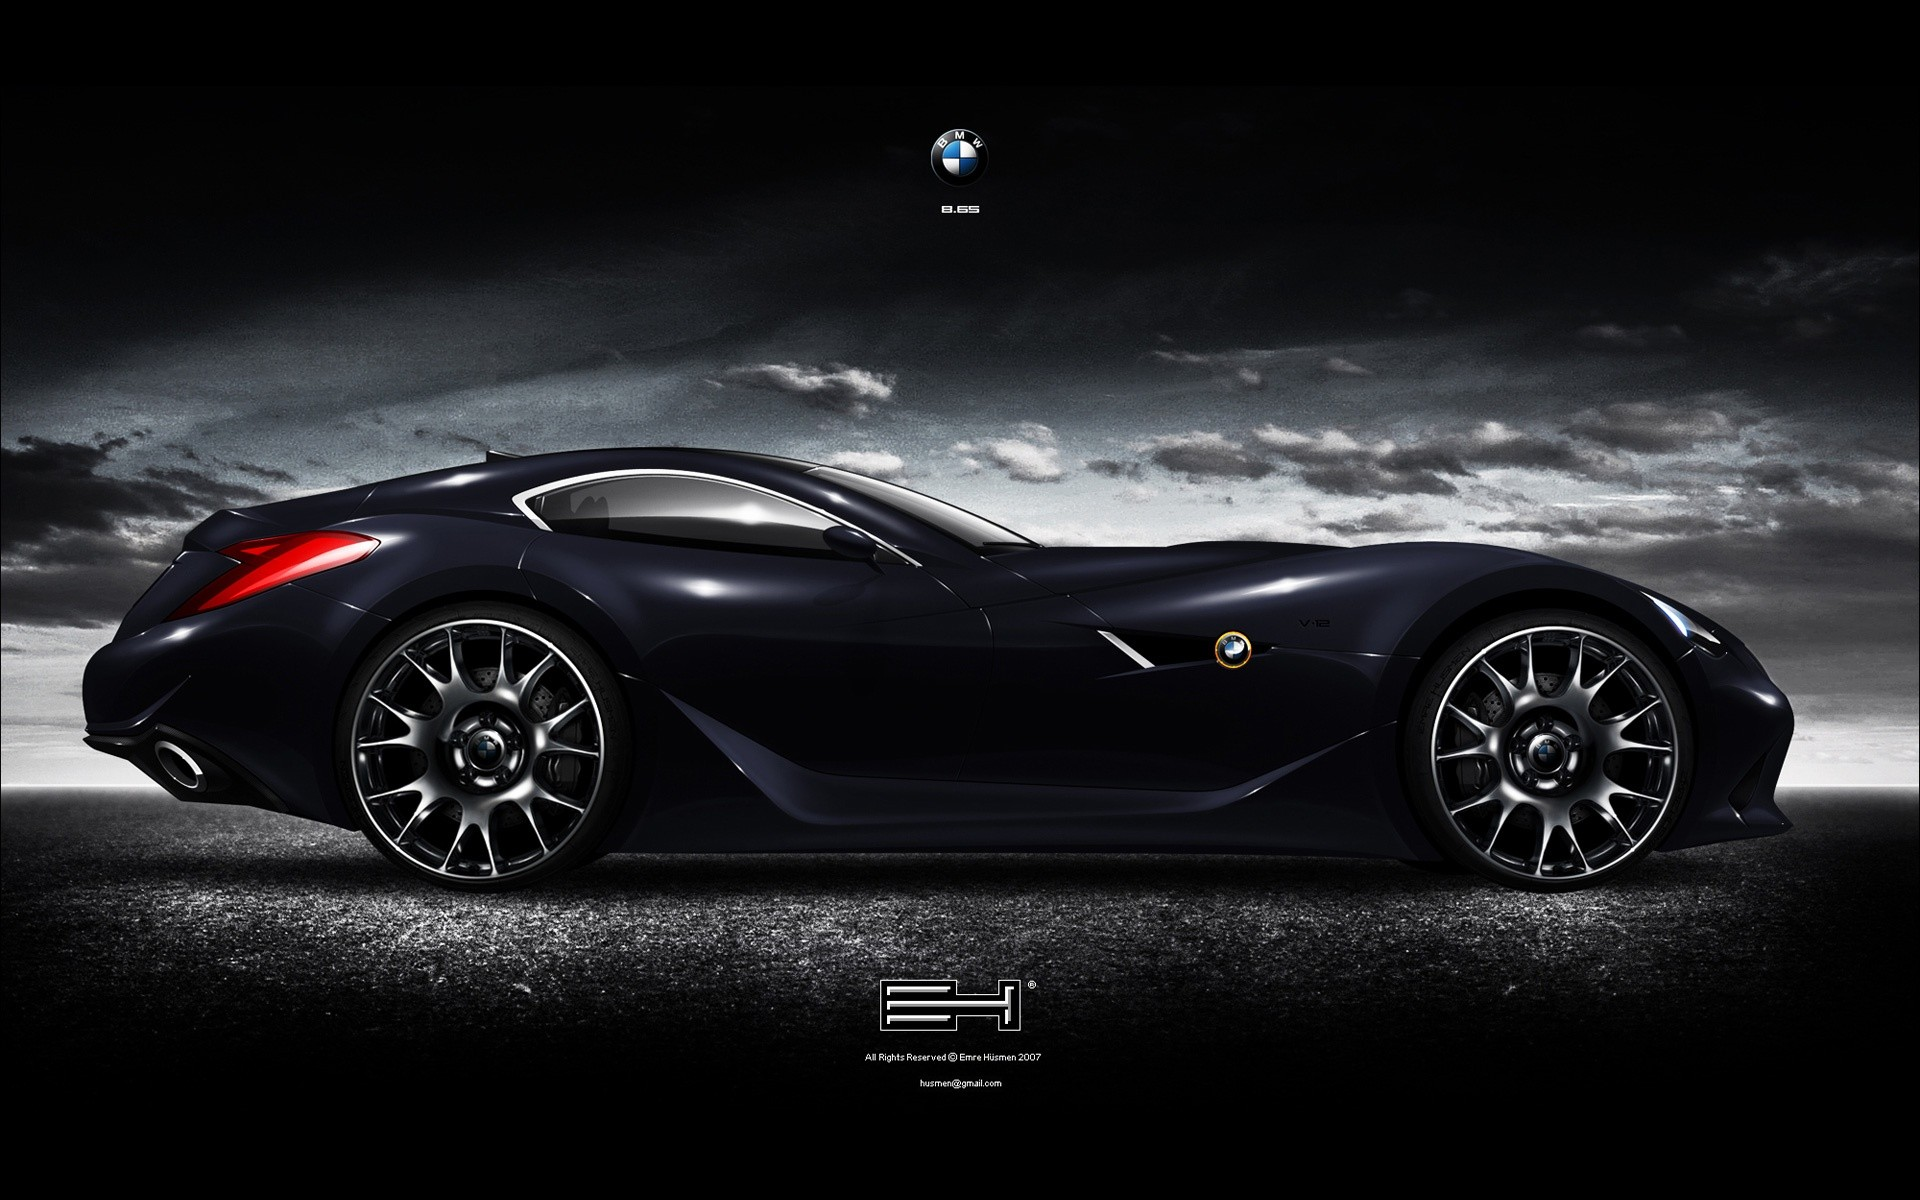 hd wallpapers bmw widescreen wallpaper supercars desktop background 1920x1200